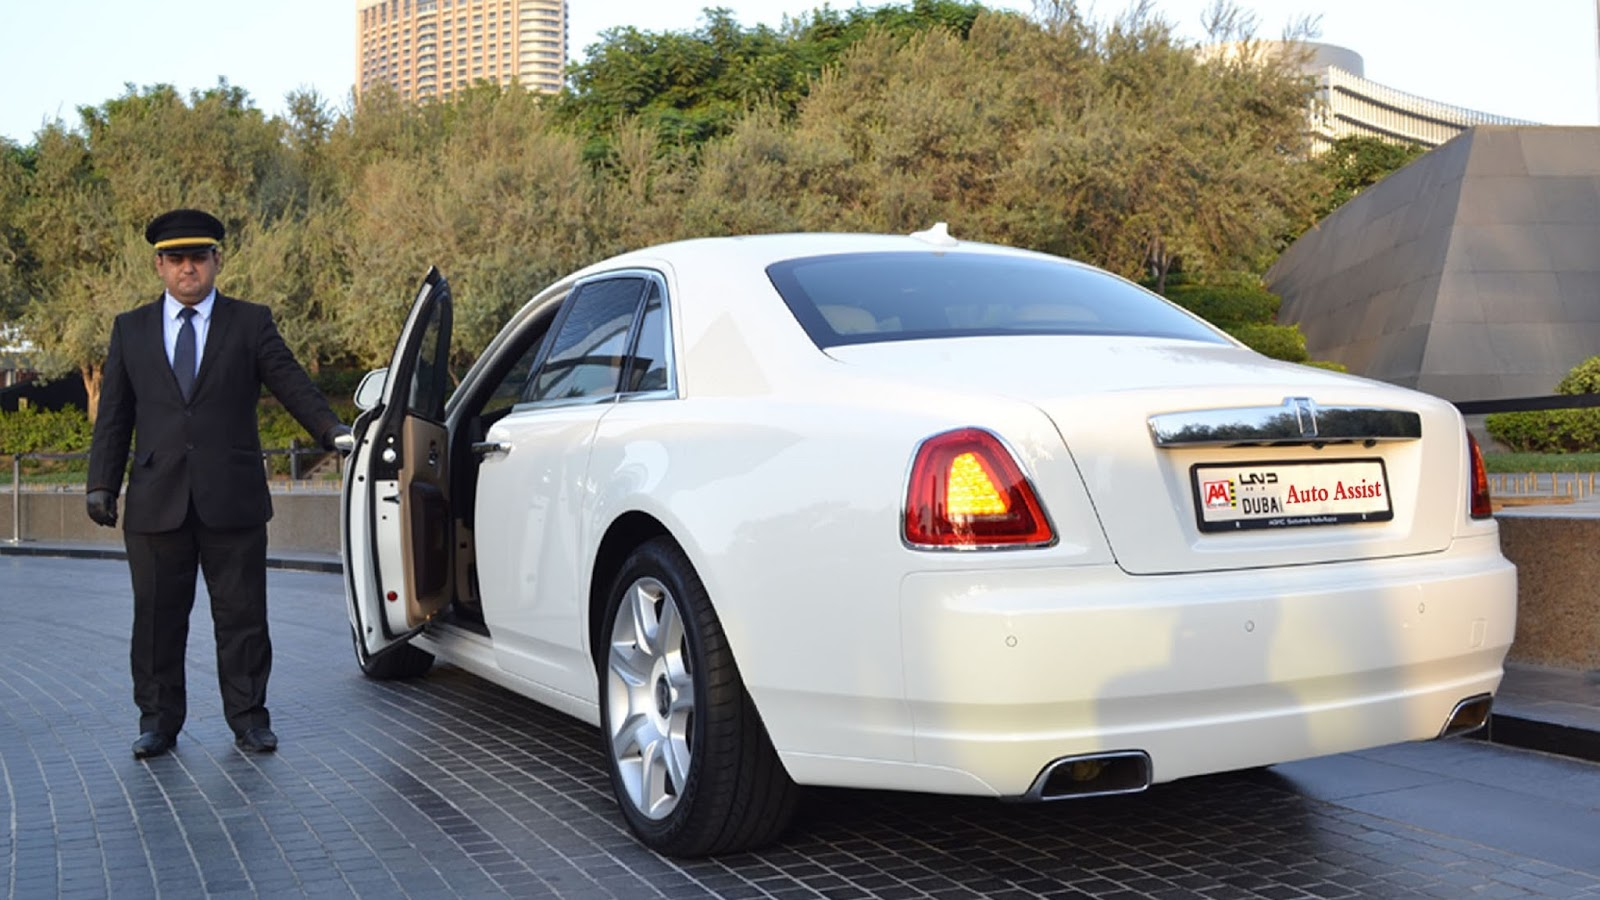 Hire A Luxury Limousine From A Known Company Auto Assist Car